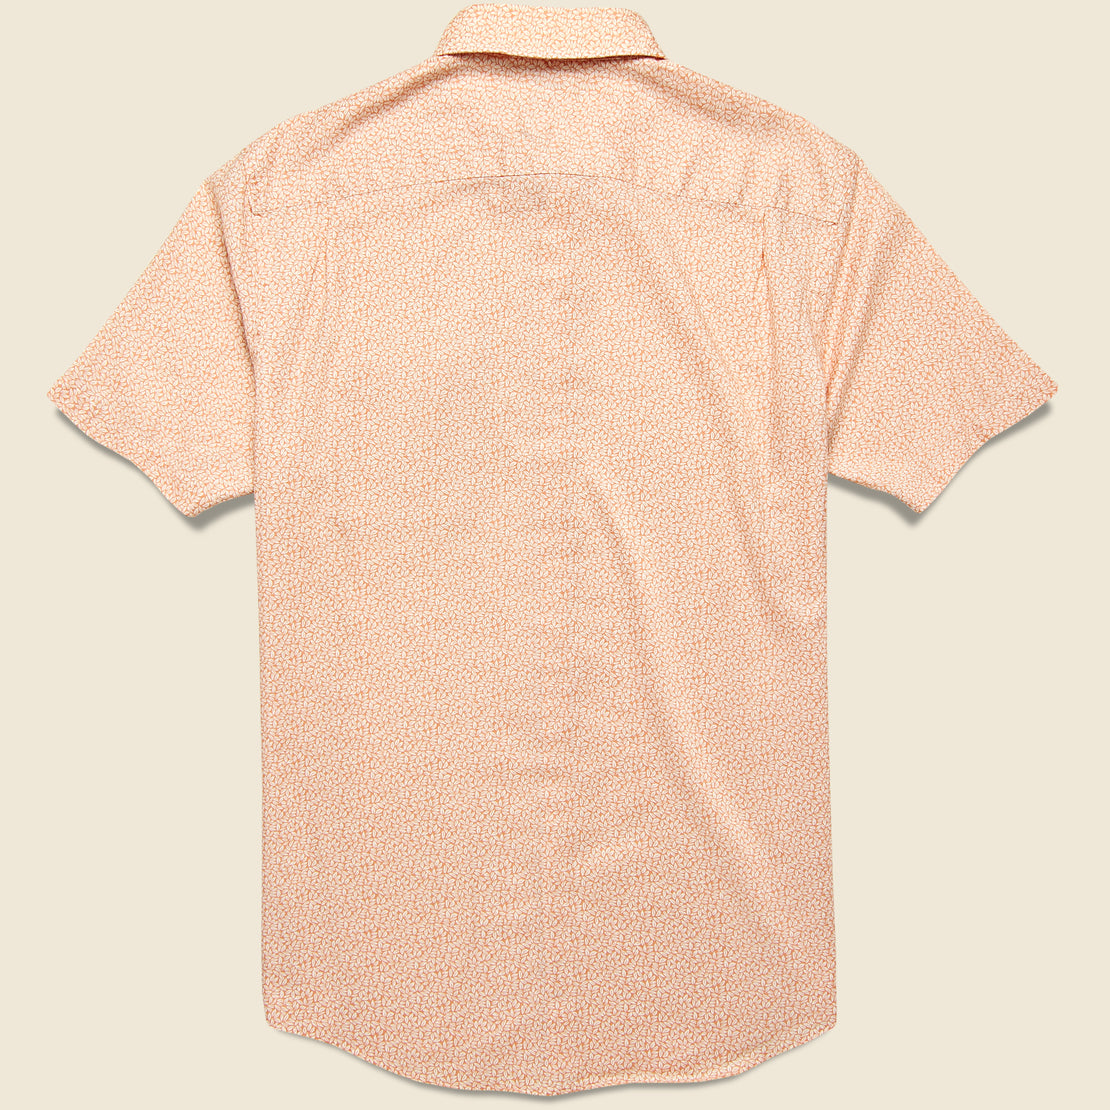 Playa Shirt - Faded Clay Leaf Print